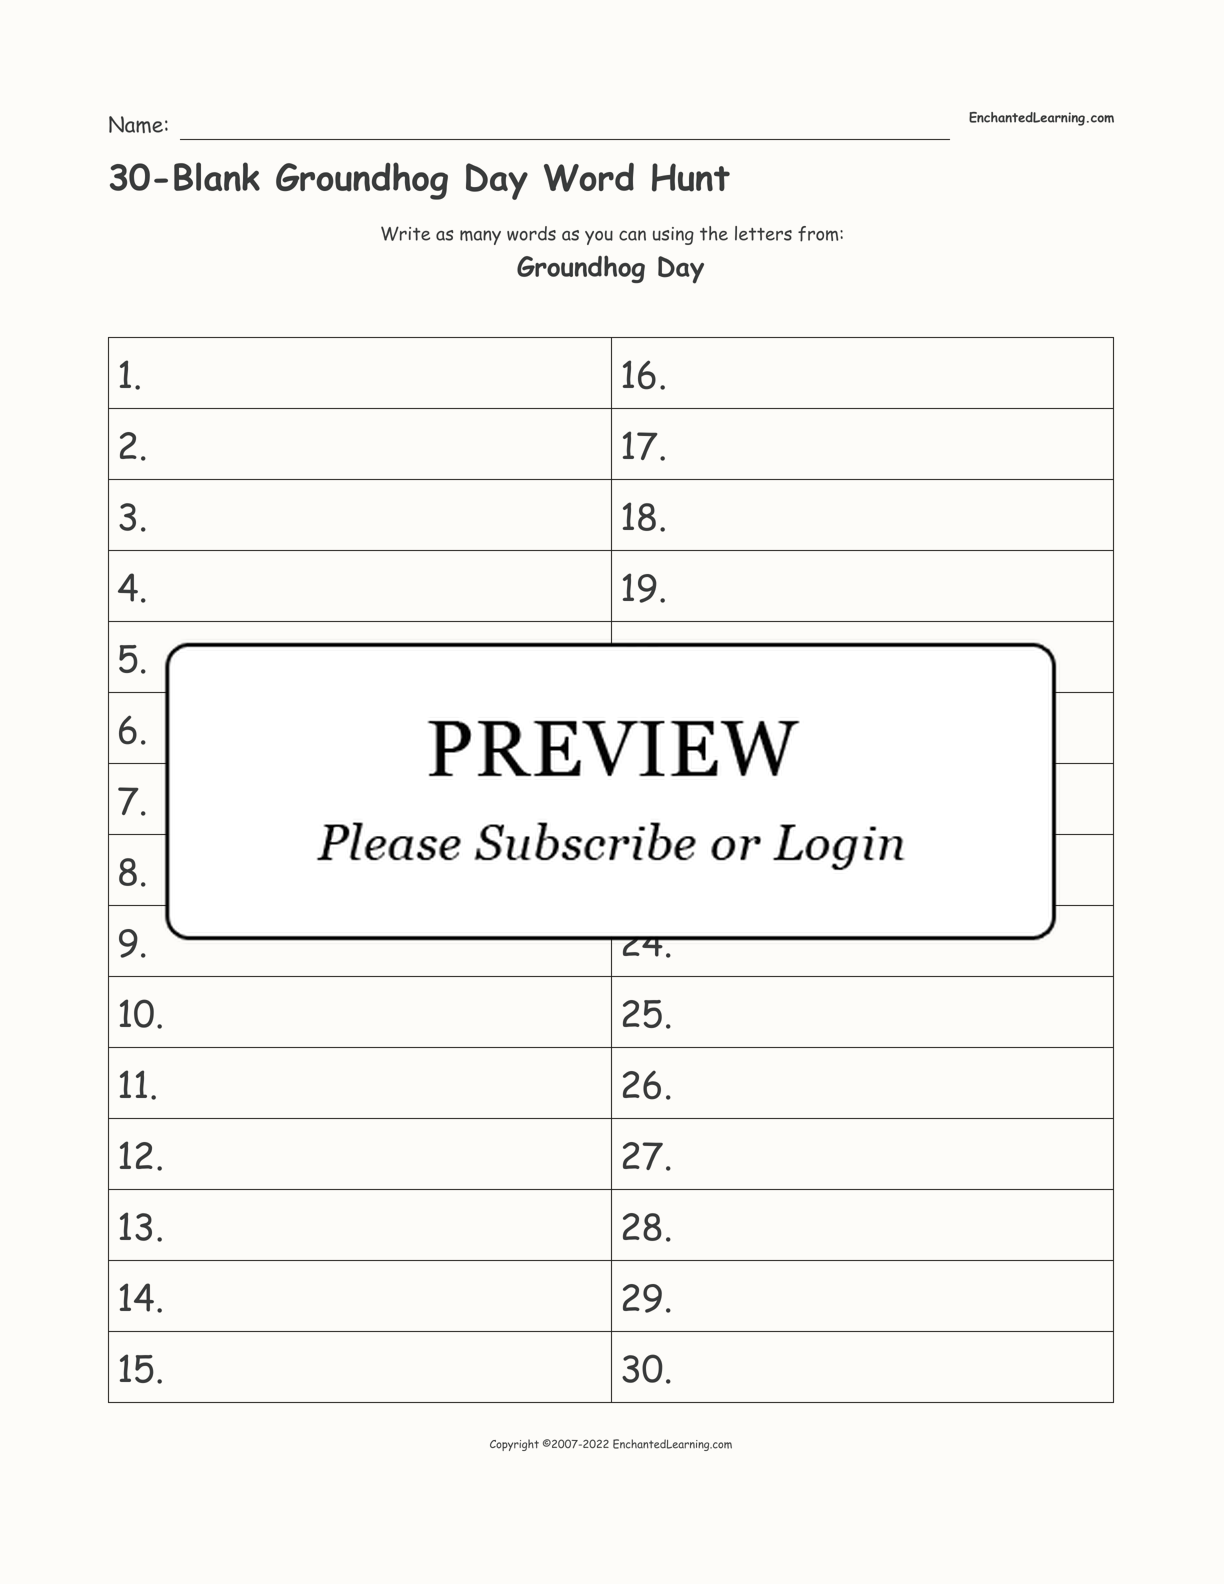 30-Blank Groundhog Day Word Hunt interactive worksheet page 1